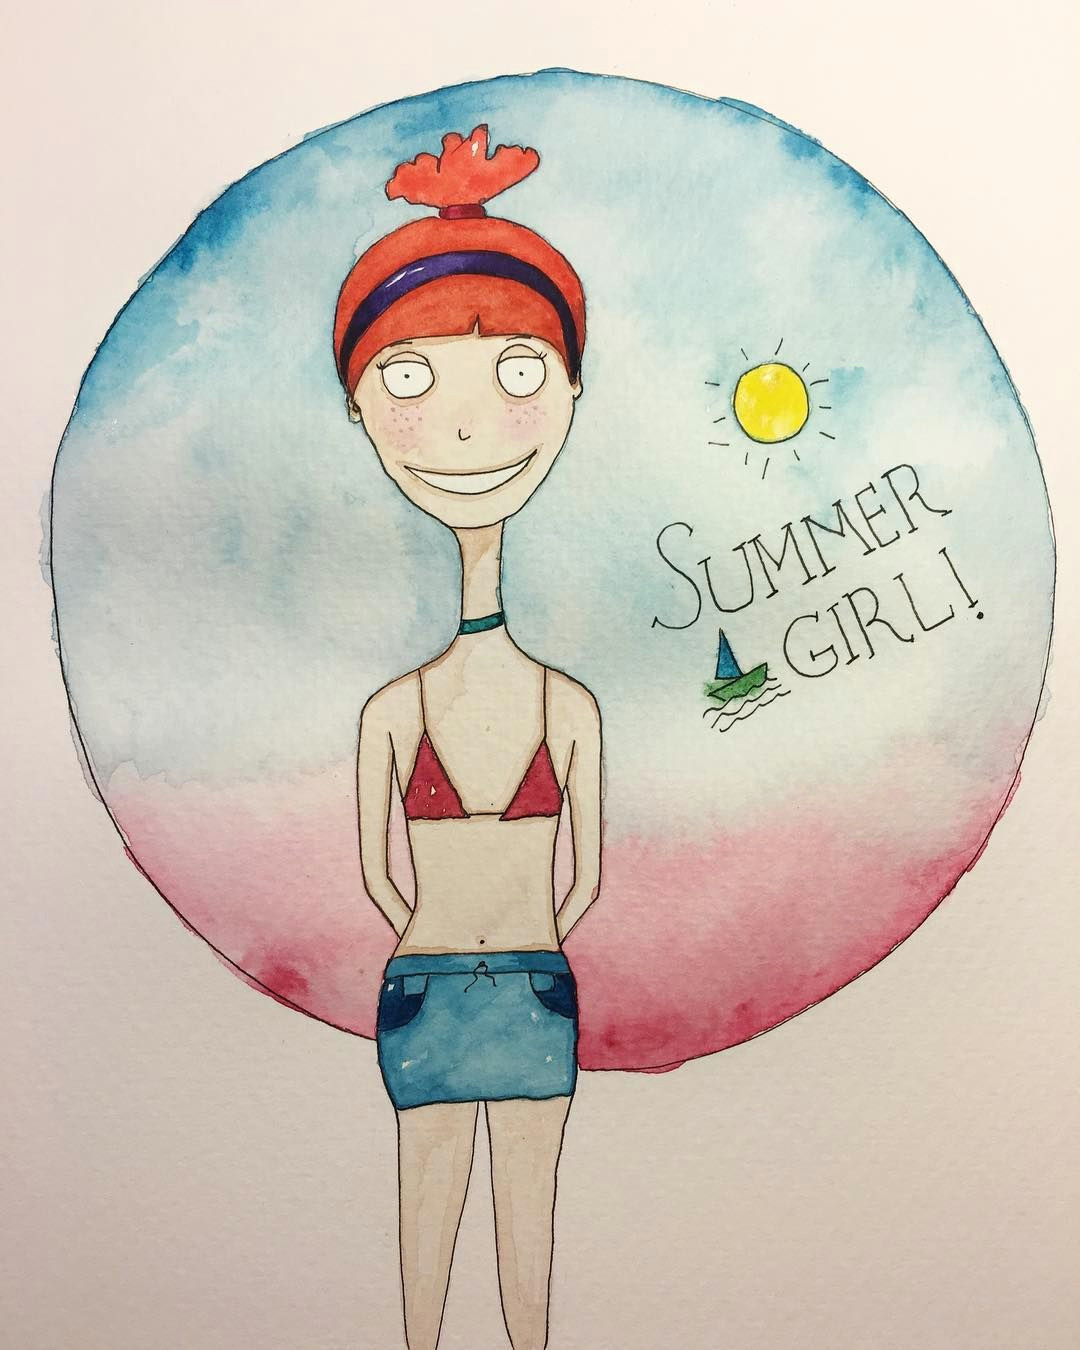 my summer girl angie characterdesign watercolor painting illustration sketch artwork